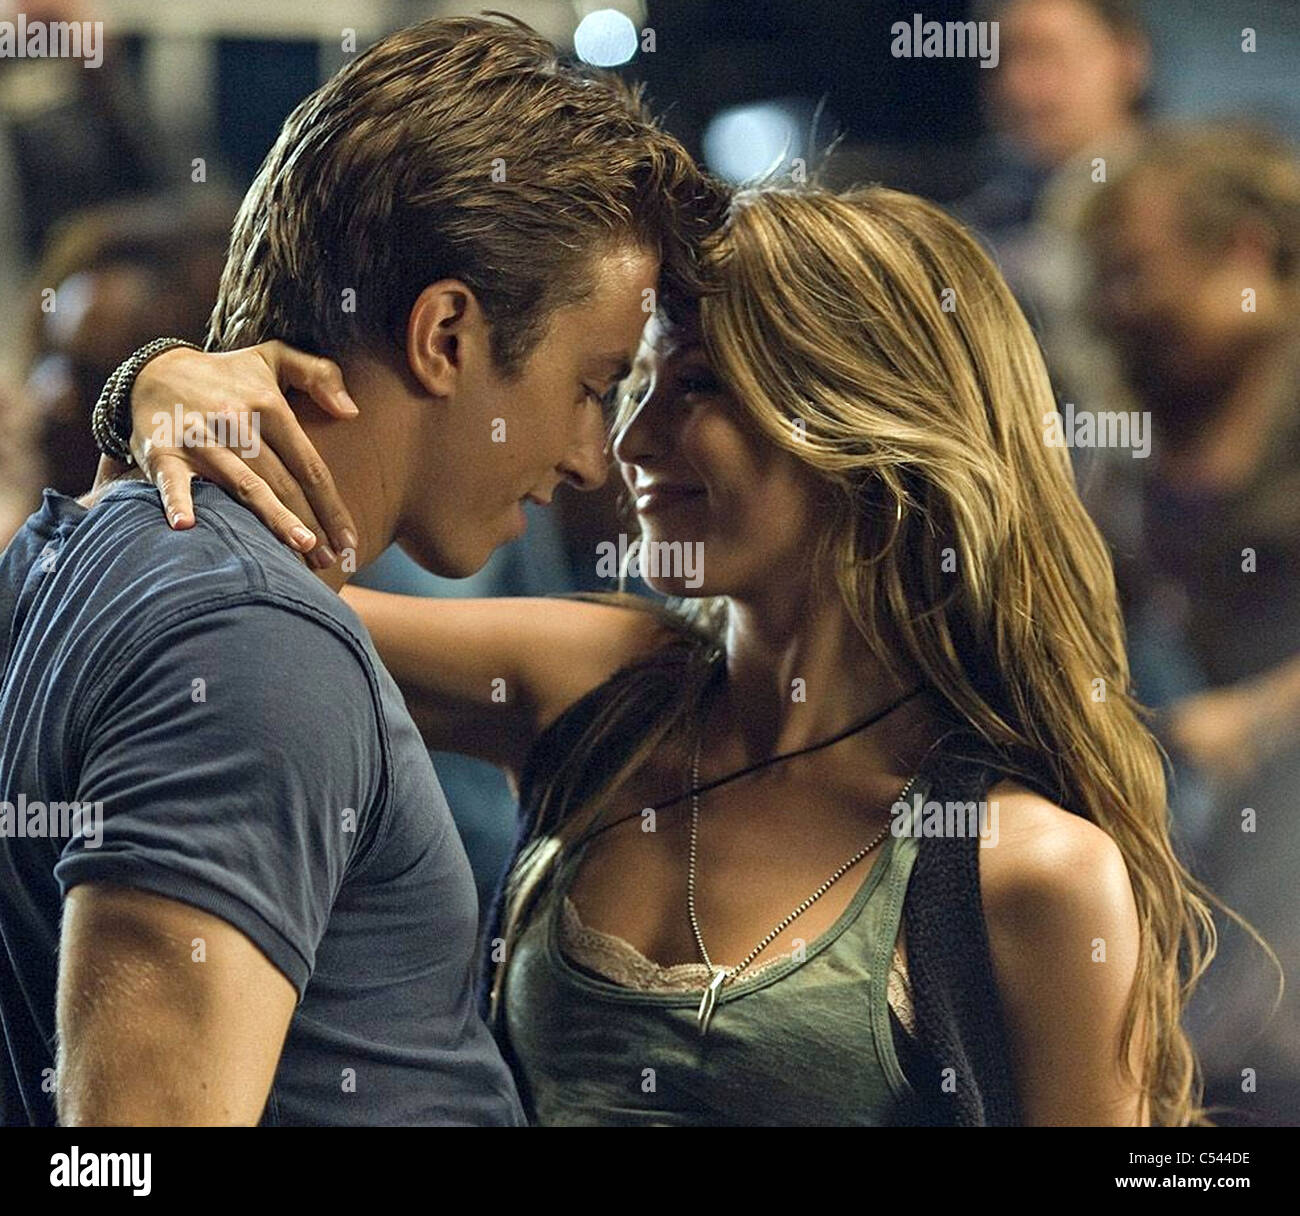 Footloose 2011 Paramount Film With Julianne Hough And Kenny